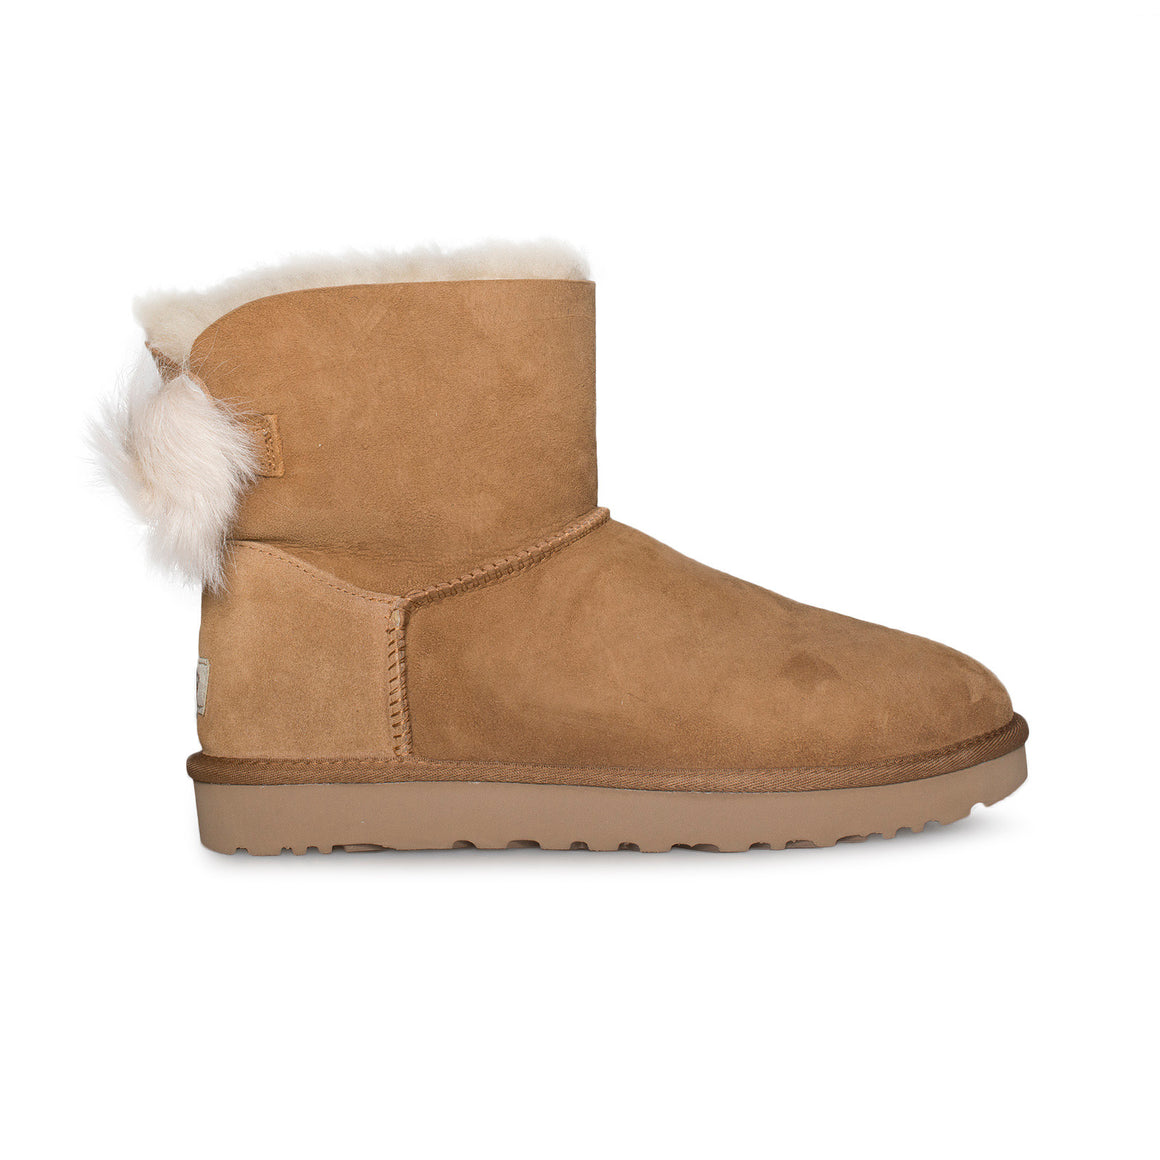 UGG Fluff Bow Mini Chestnut Boots - Women's